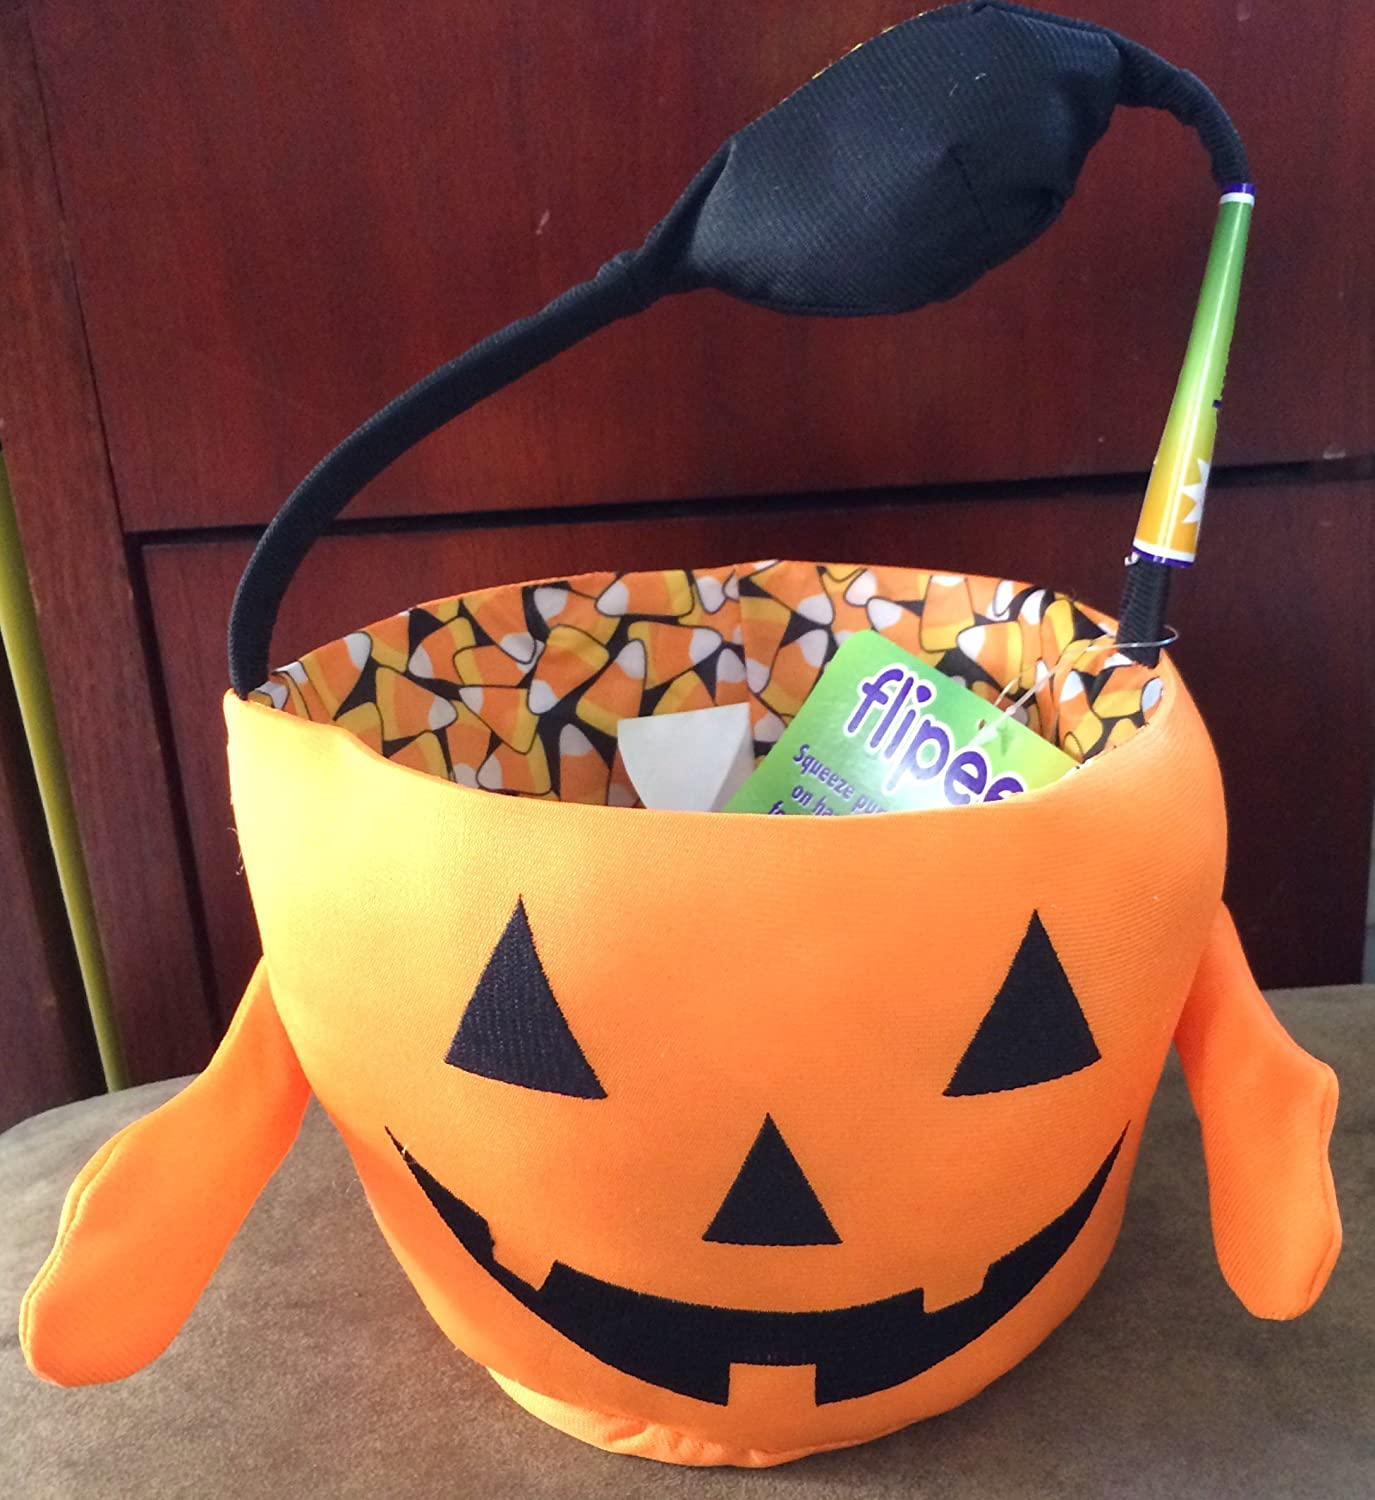 Flipeez Halloween Baskets - Pumpkin 3395986